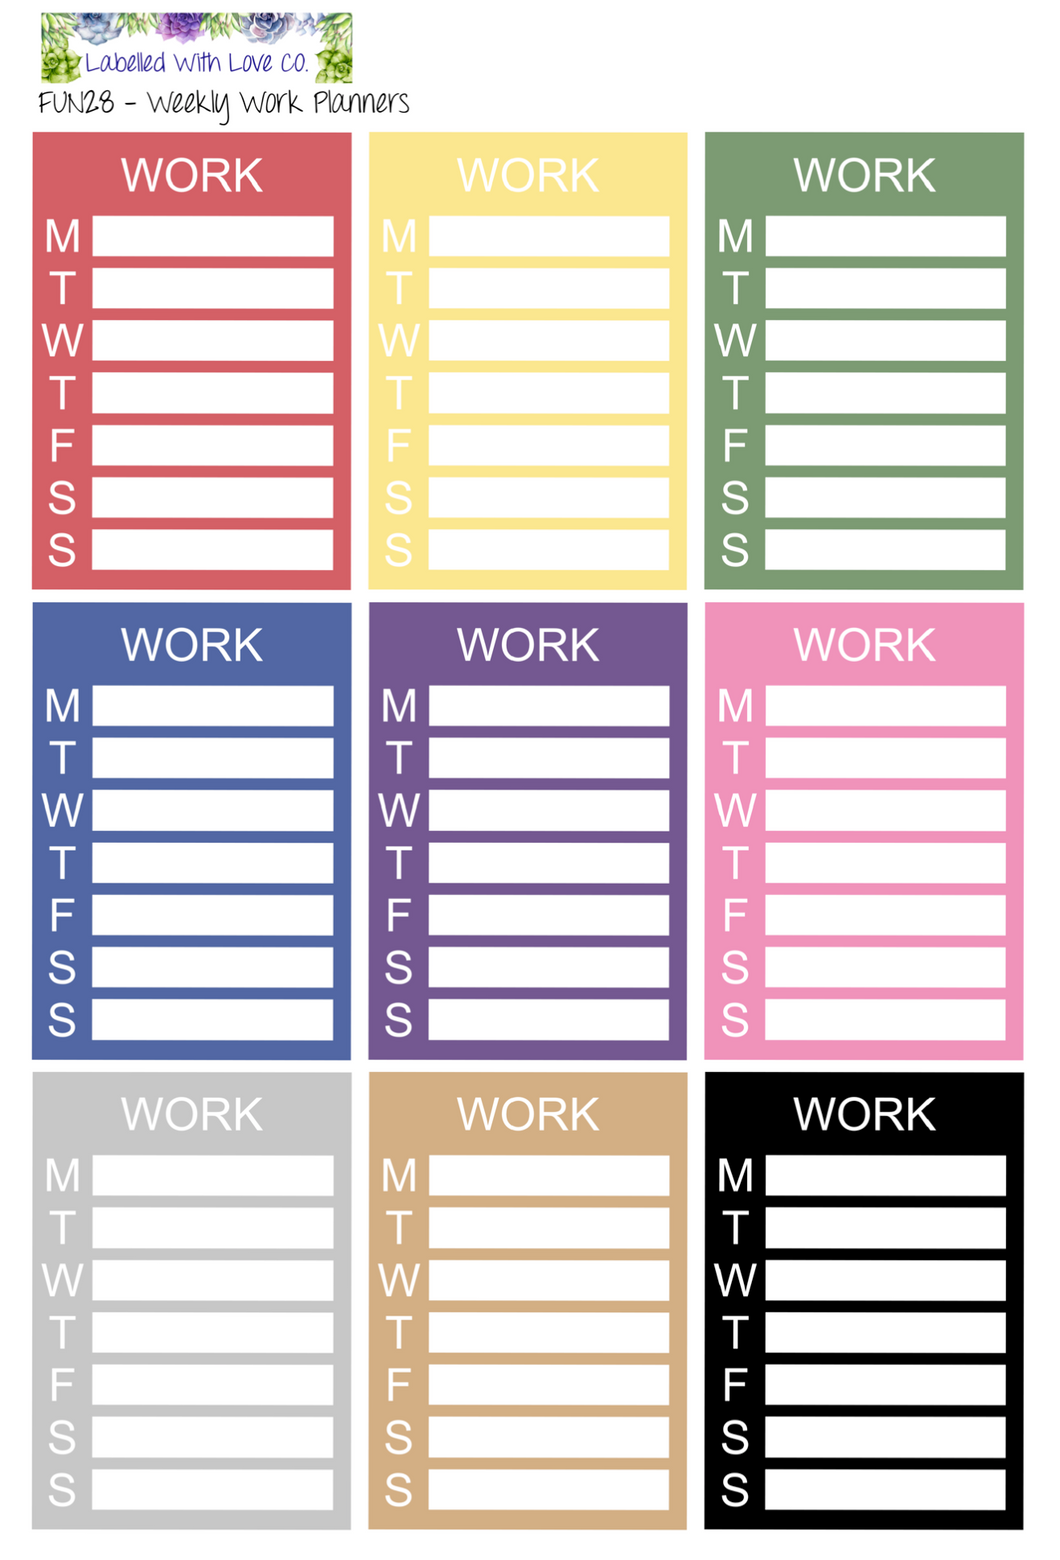 fun29 weekly work planners labelled with love co